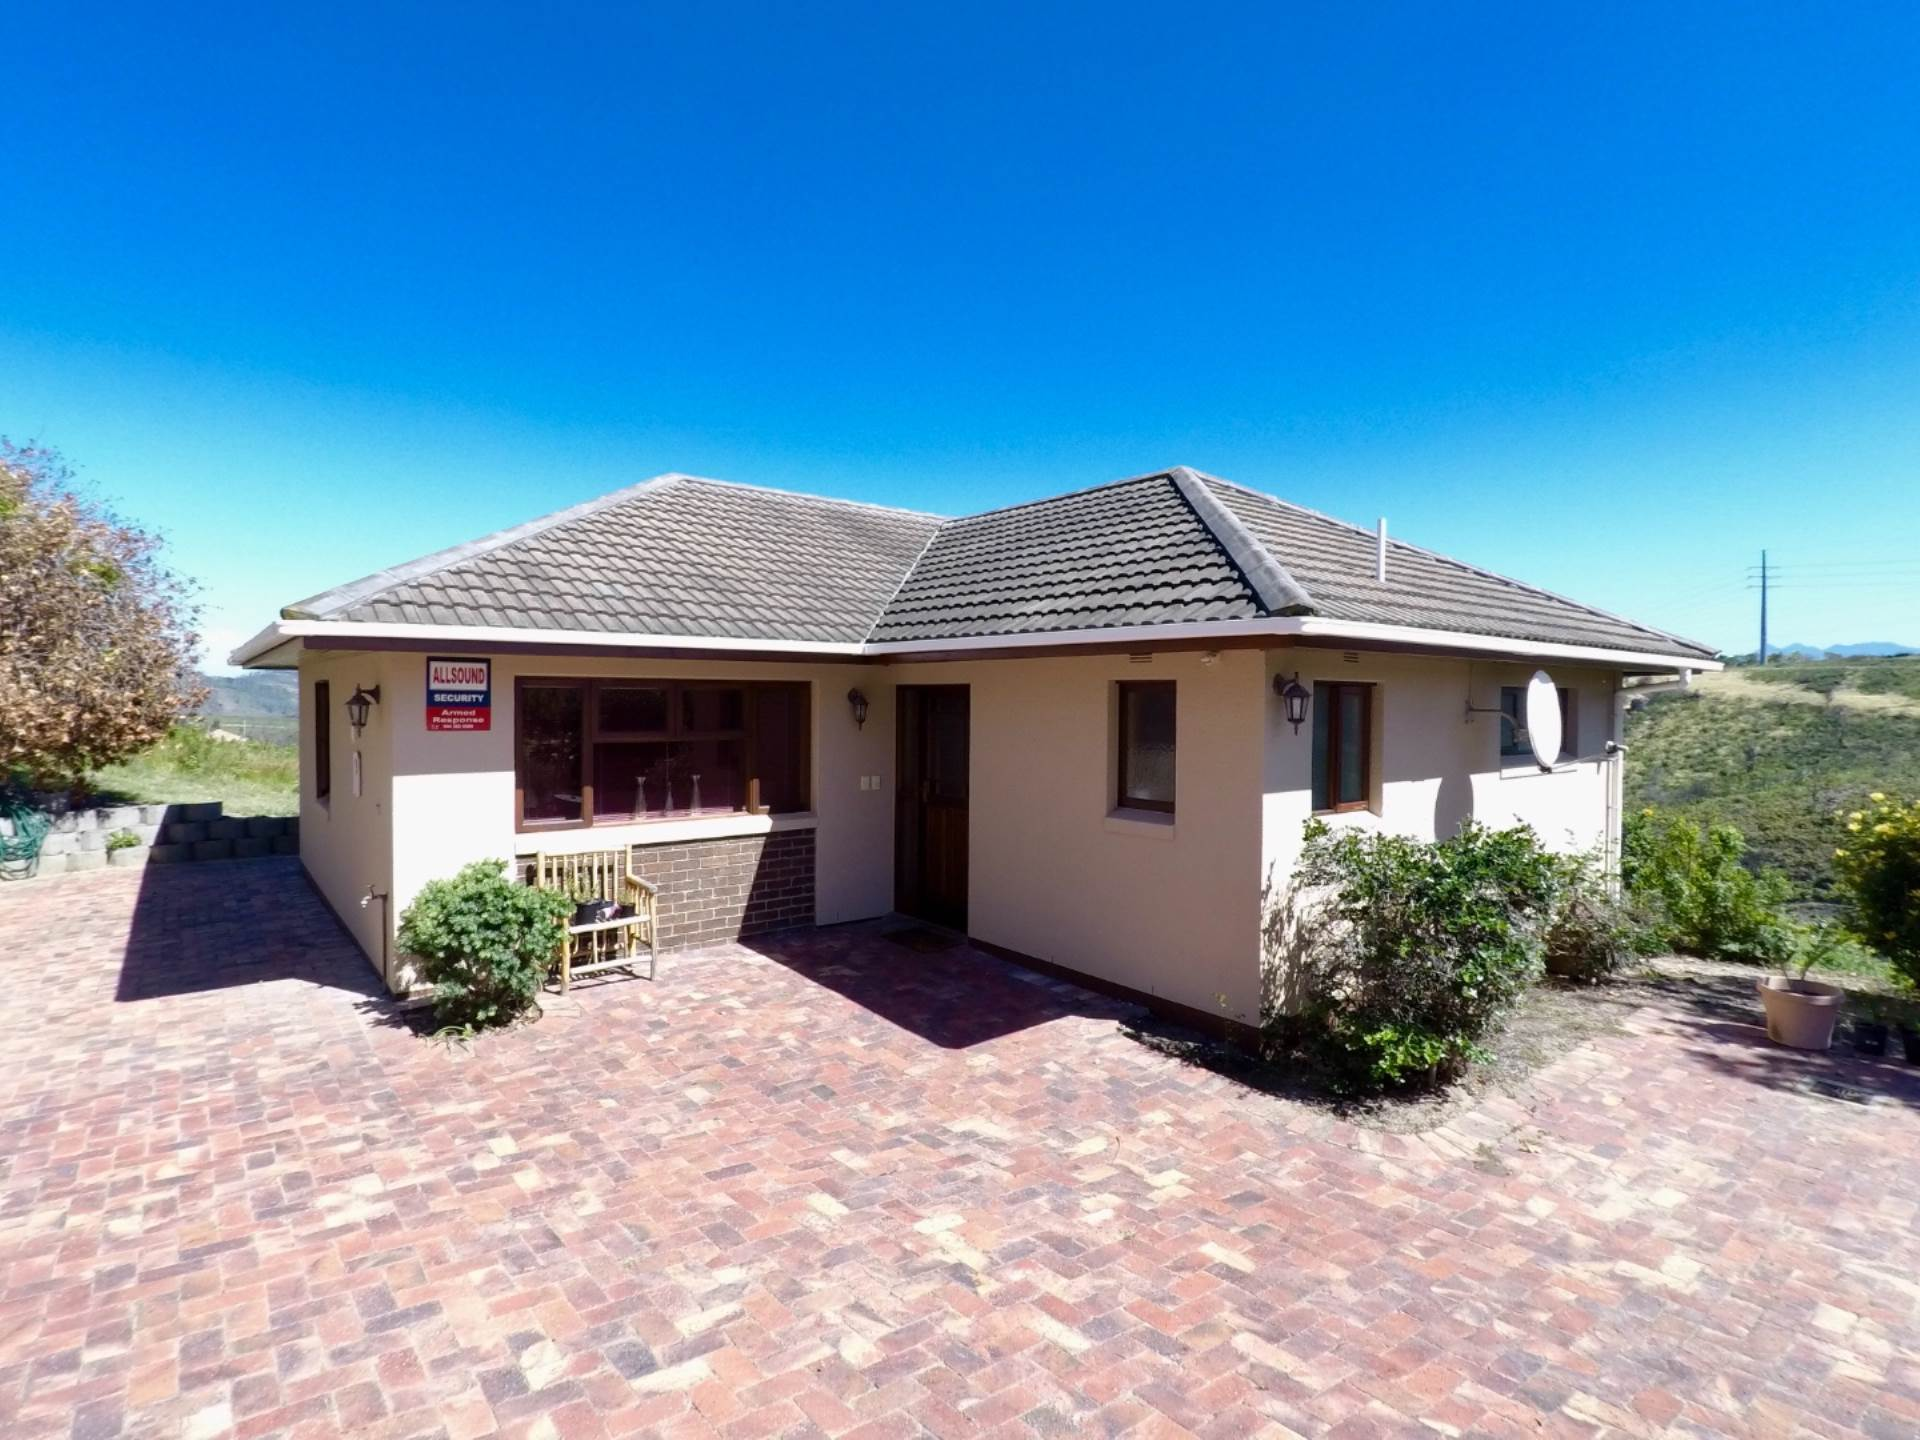 2 BedroomHouse For Sale In Eastford Ridge